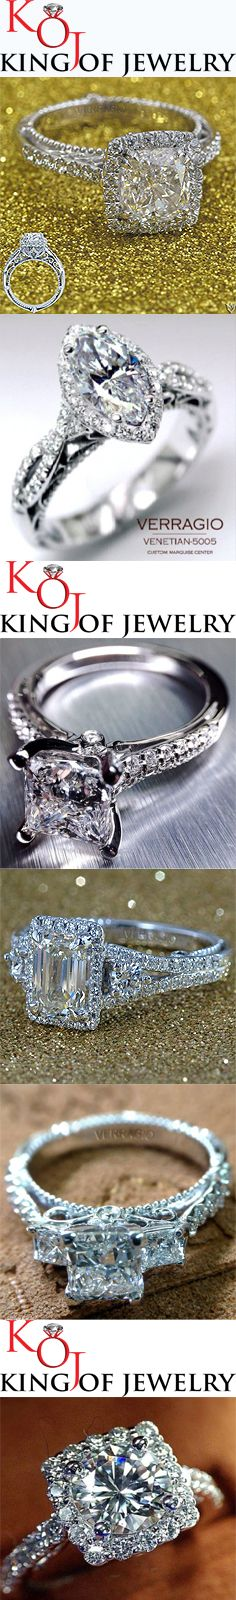 Verragio diamond engagement rings at www.kingofjewelry.com